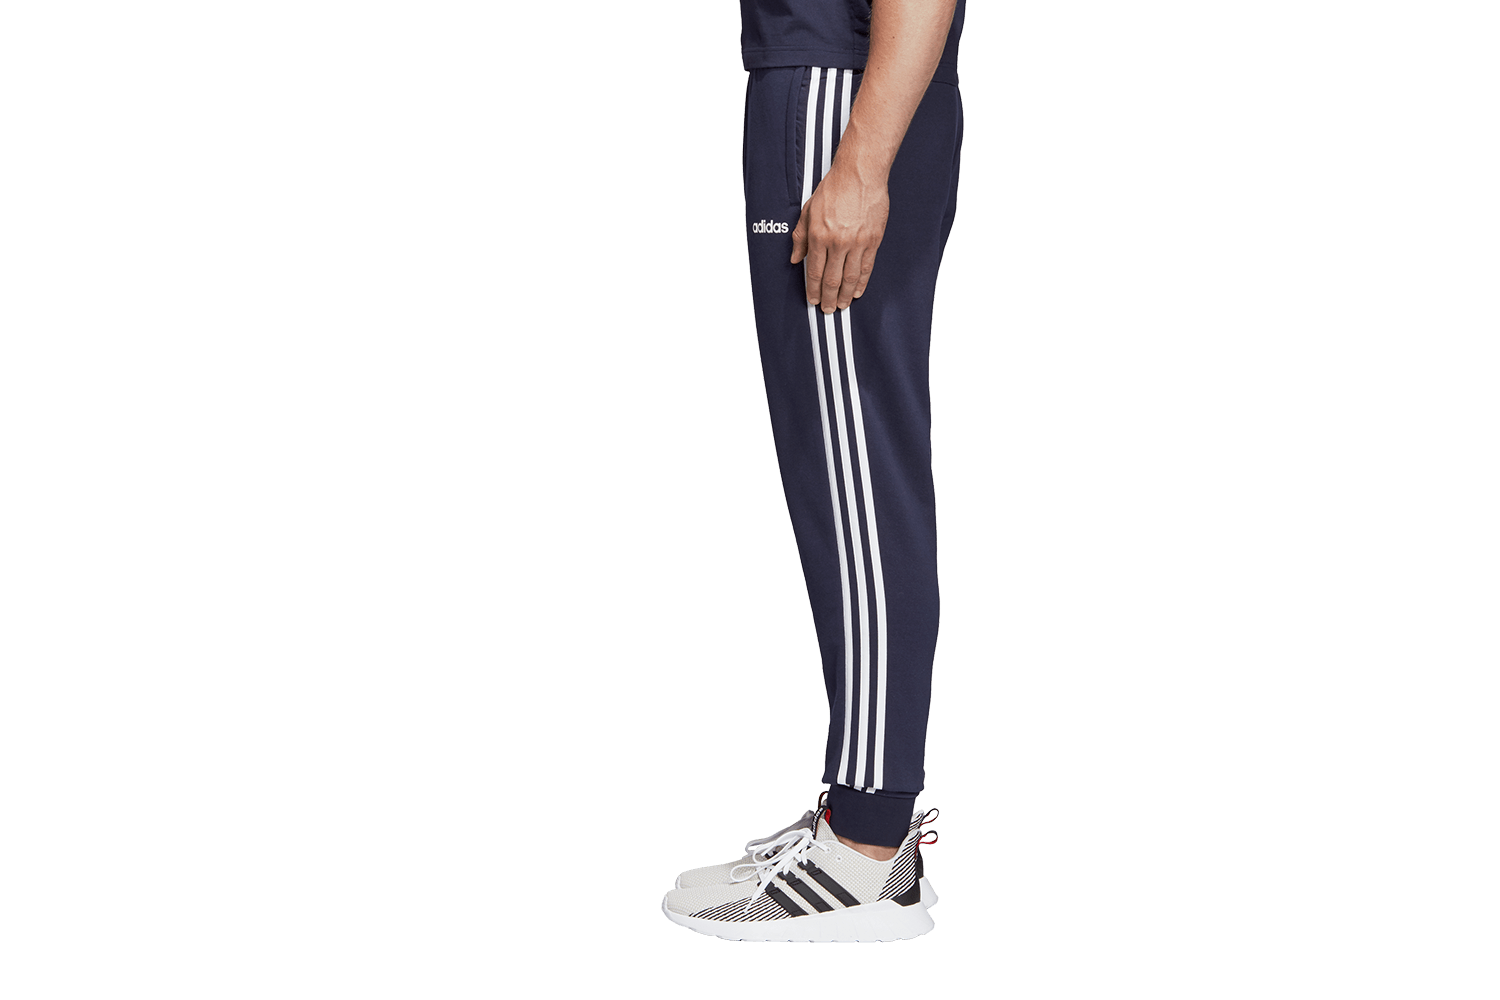 88f5c2b46a6 DU0478 ADIDAS ΠΑΝΤΕΛΟΝΙ ΦΟΡΜΑΣ ΜΕ ΛΑΣΤΙΧΟ ESSENTIALS 3-STRIPES TAPERED  CUFFED | WeR